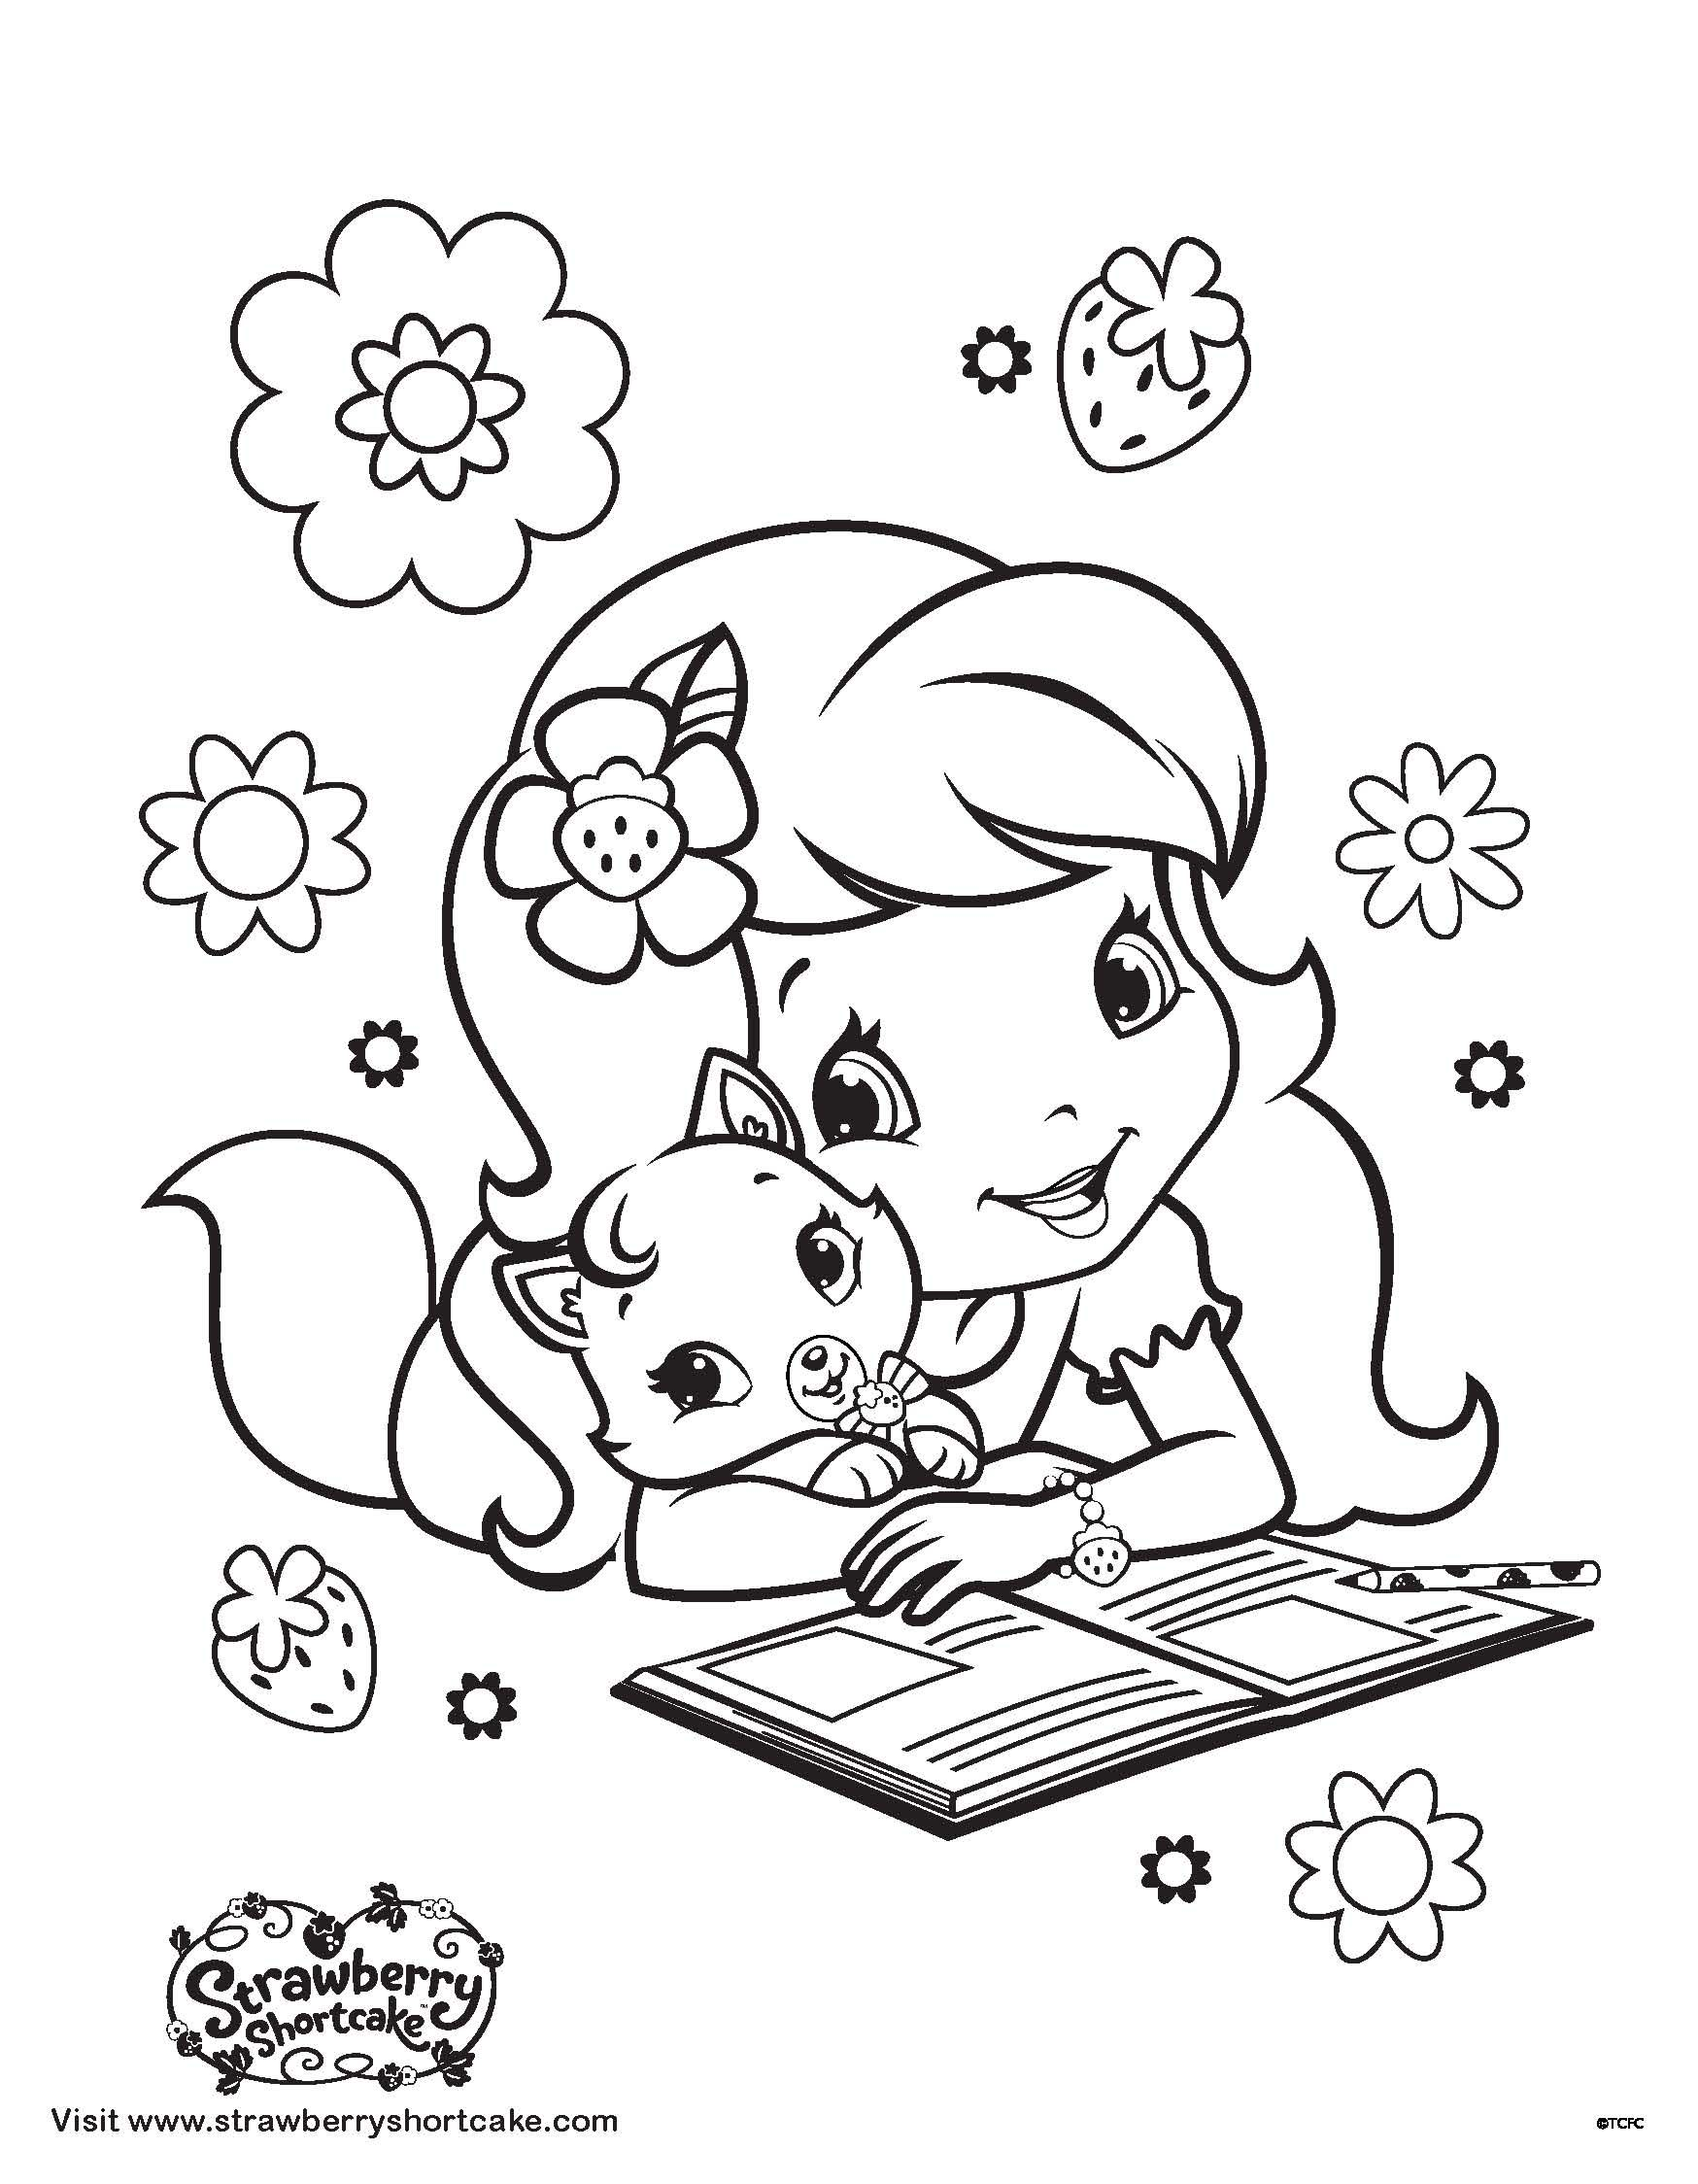 Strawberry Shortcake and Custard coloring page! Strawberry Shortcake Games & Activities ...